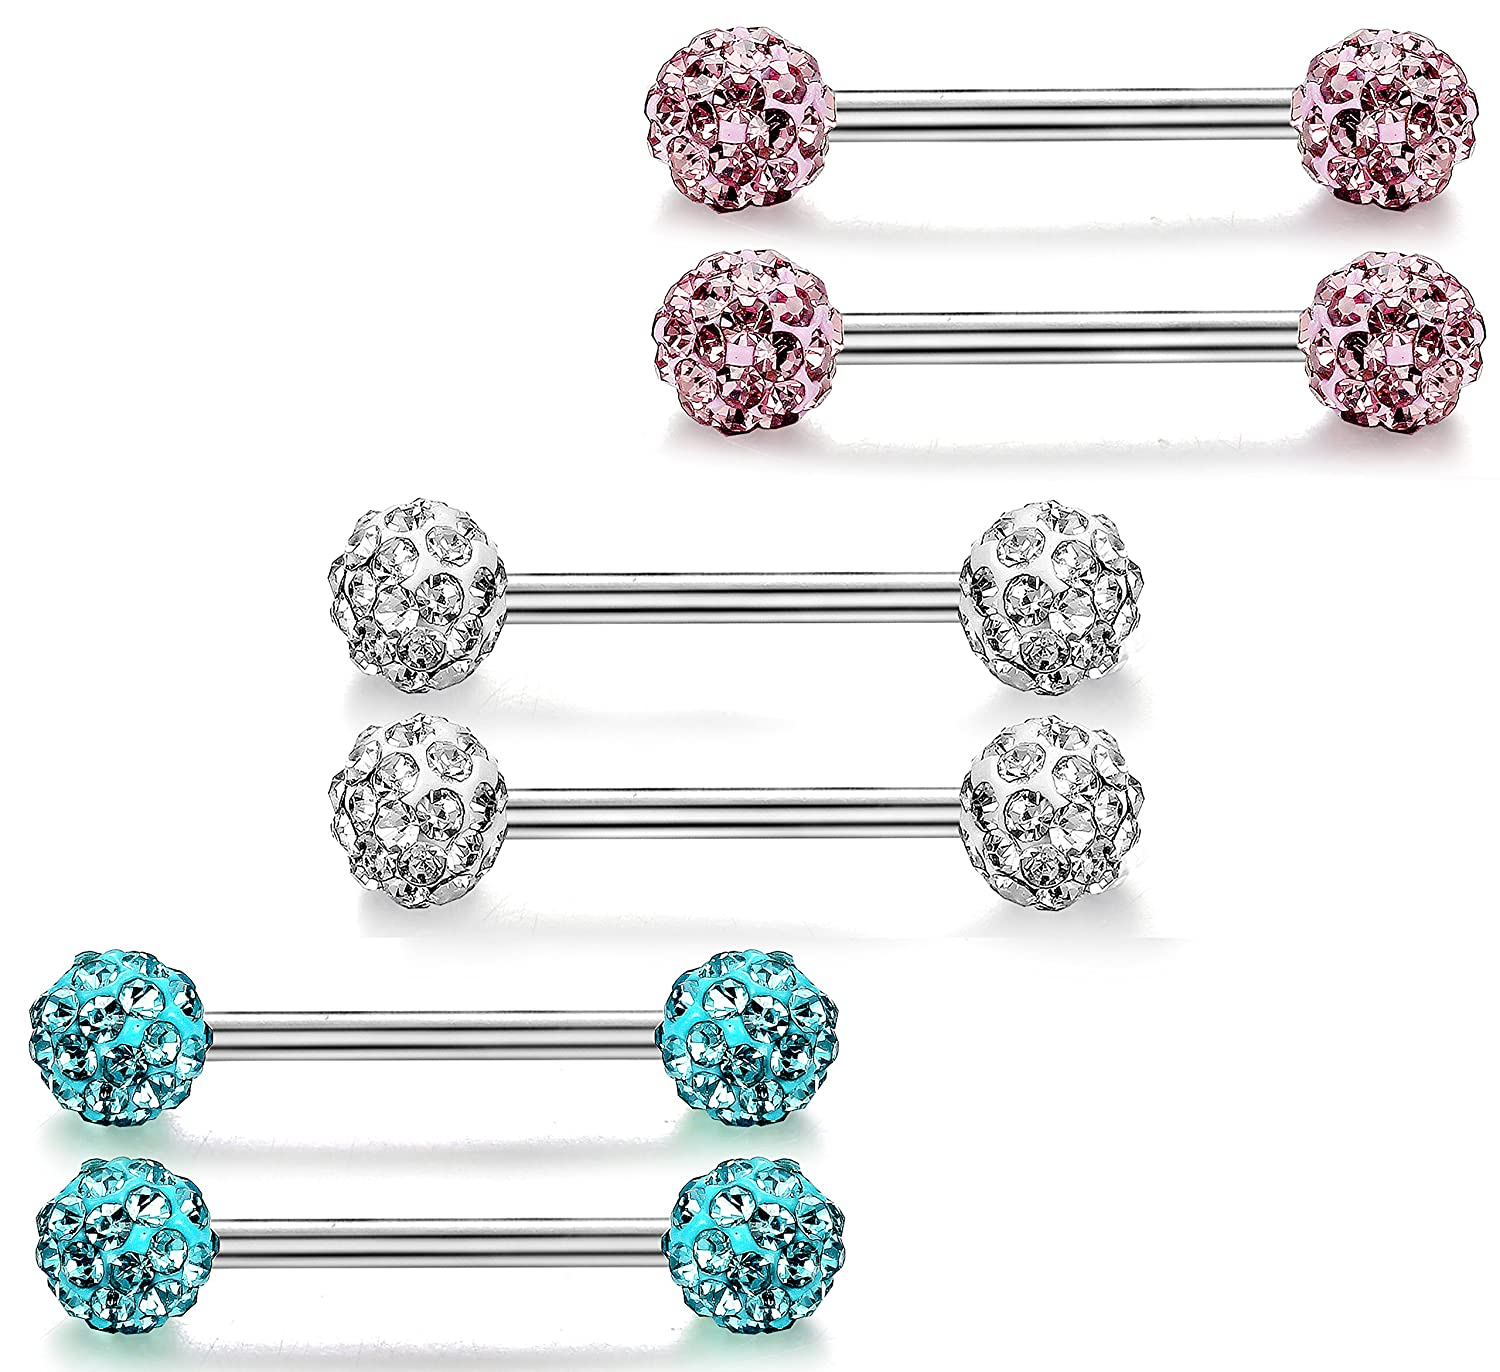 ORAZIO 6-8 Pcs 14G 316L Stainless Steel CZ Nipple Piercing Barbell Belly Button Ring for Women CC06C-4SET